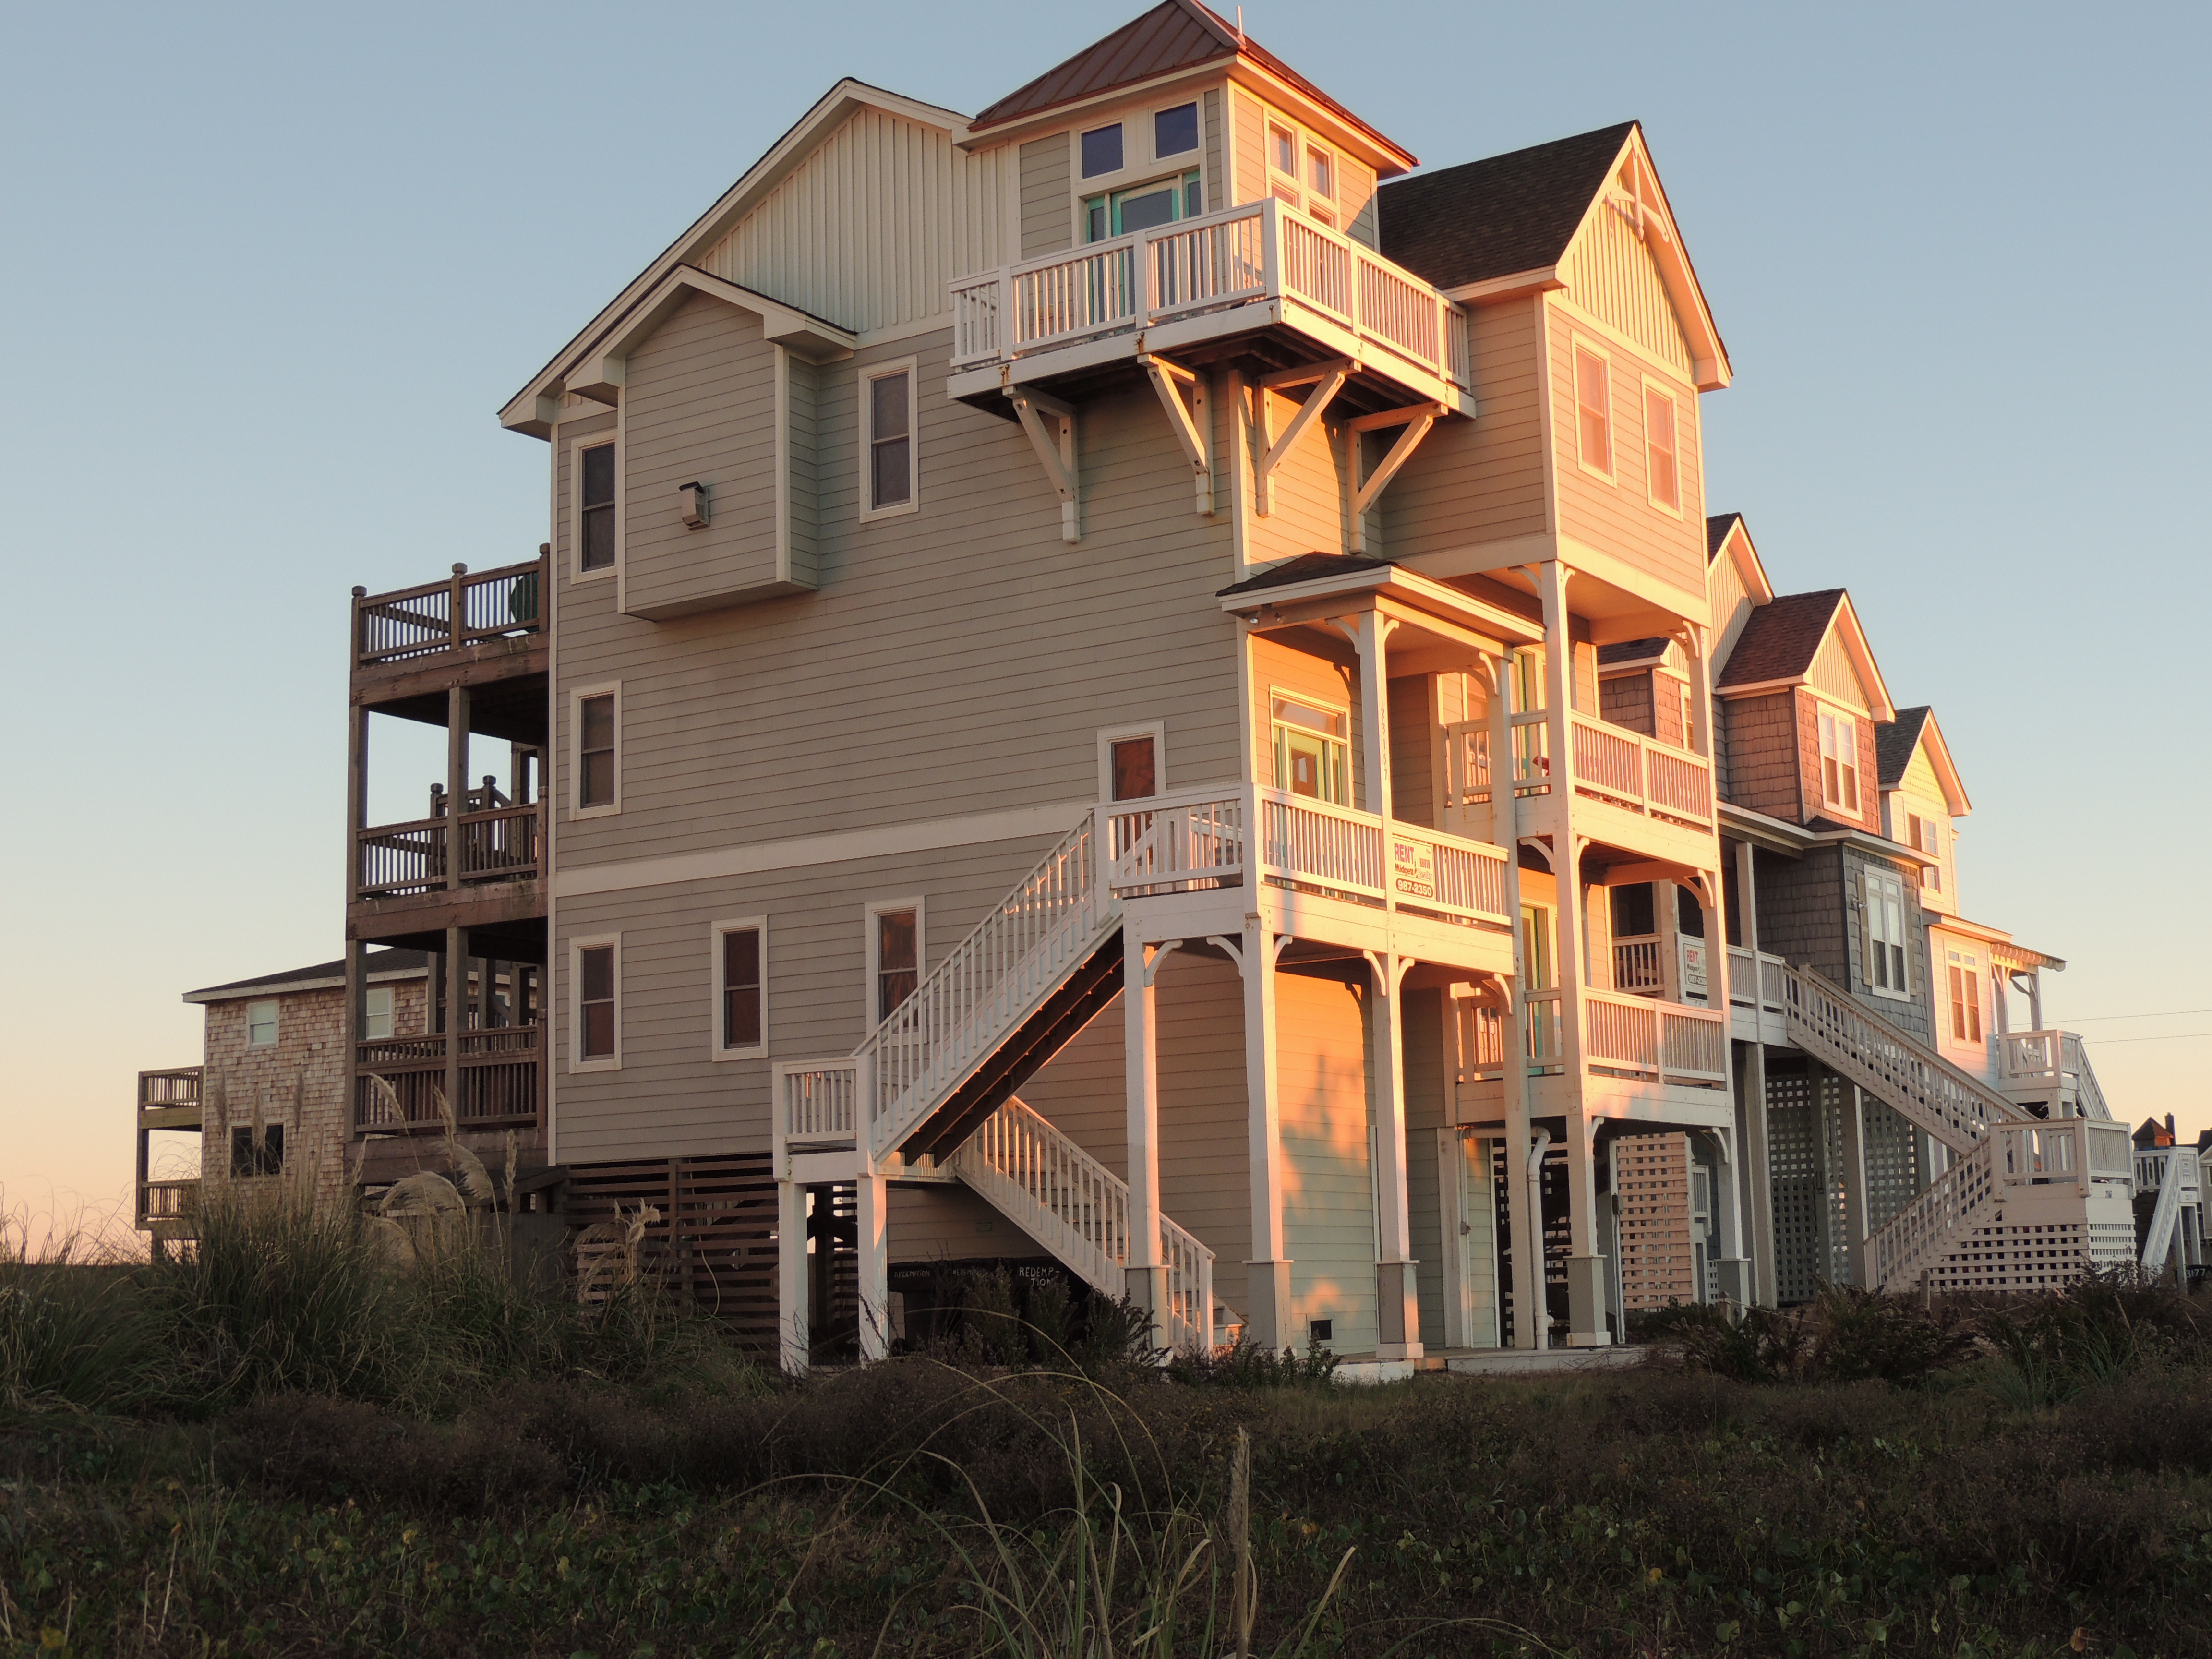 THE OUTER BANKS | wheresphred